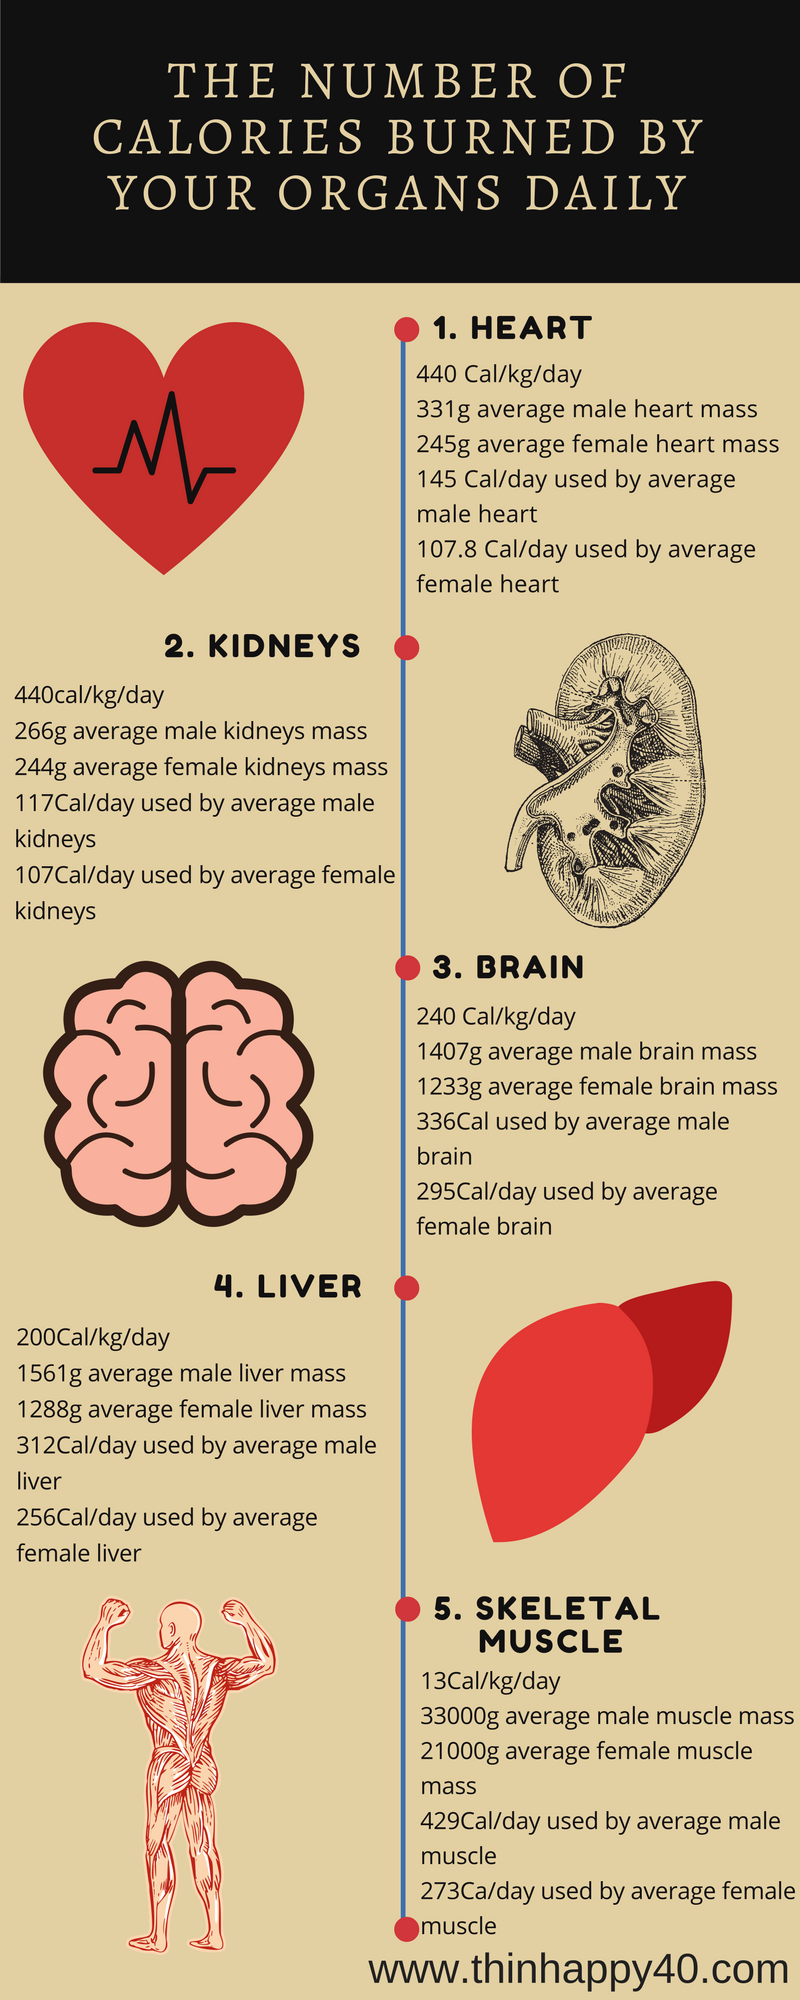 Calories burned by organs daily